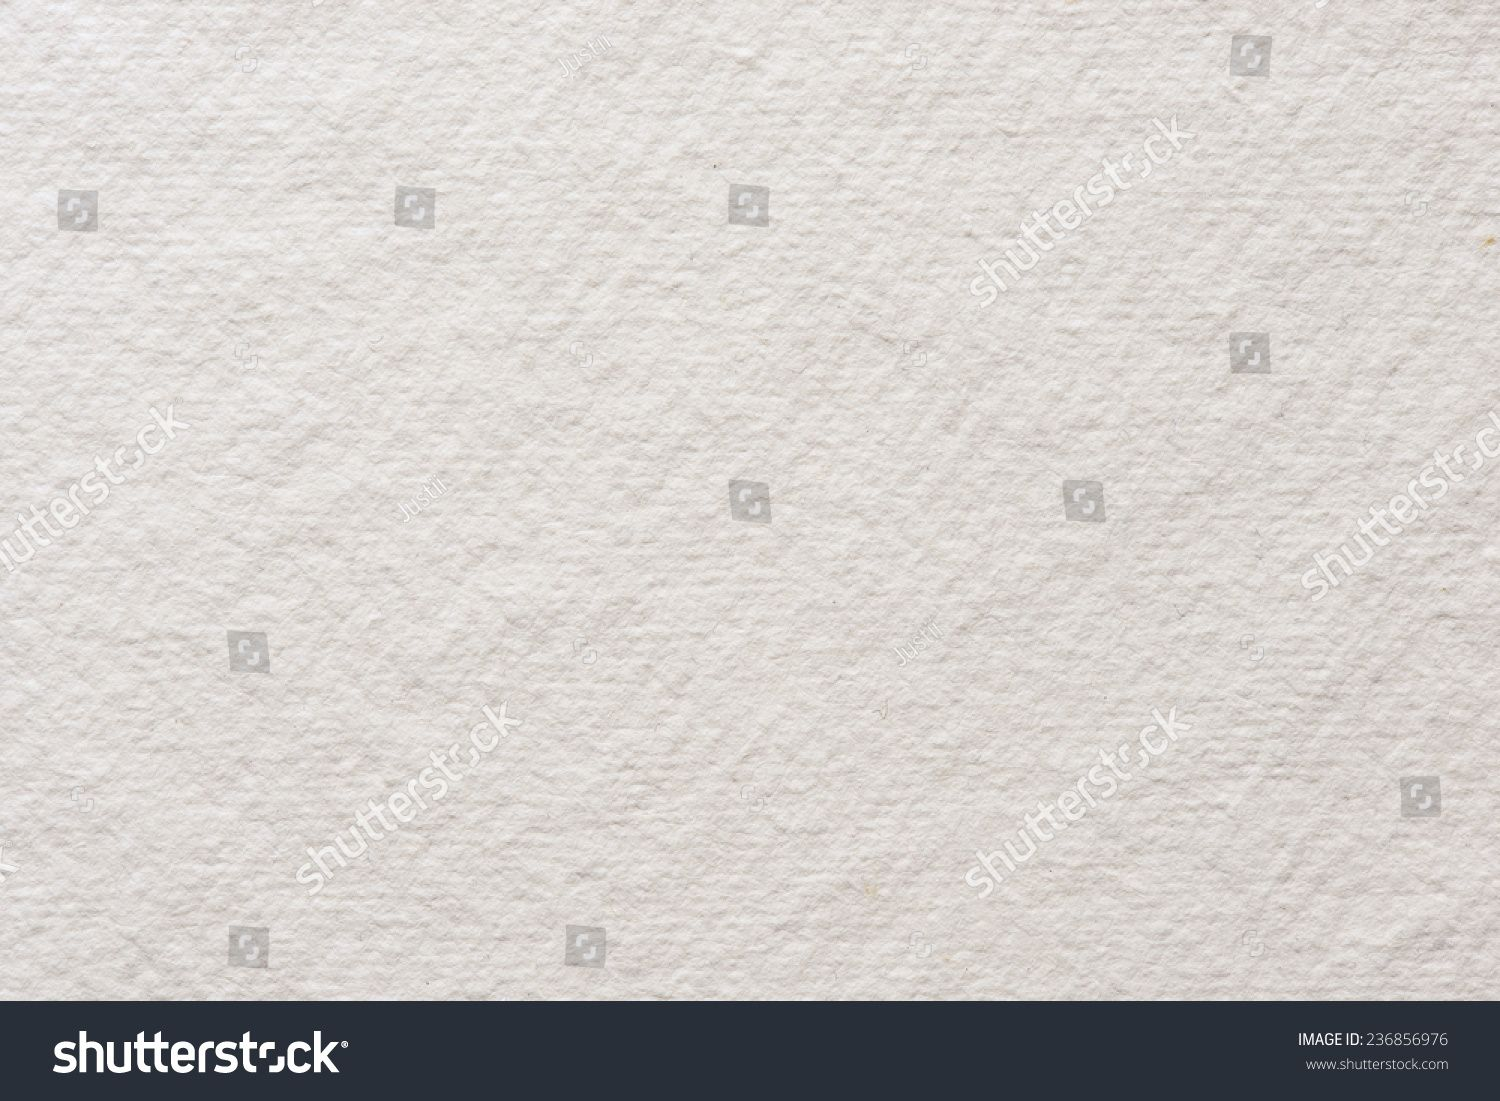 White Watercolor Paper Texture Royalty Free Image Photo